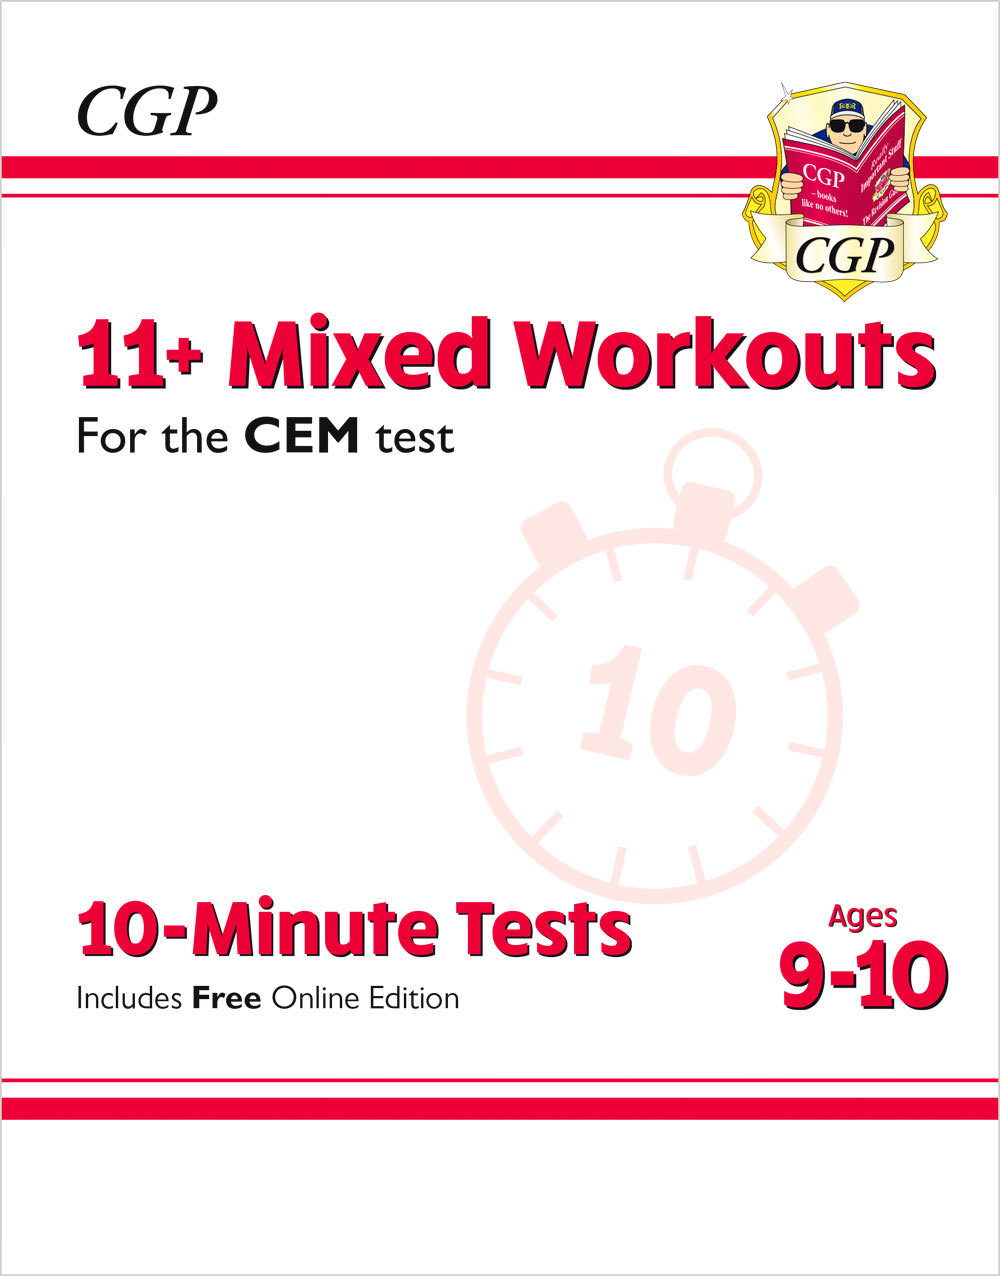 L5XWDE2 - 11+ CEM 10-Minute Tests: Mixed Workouts - Ages 9-10 (with Online Edition)